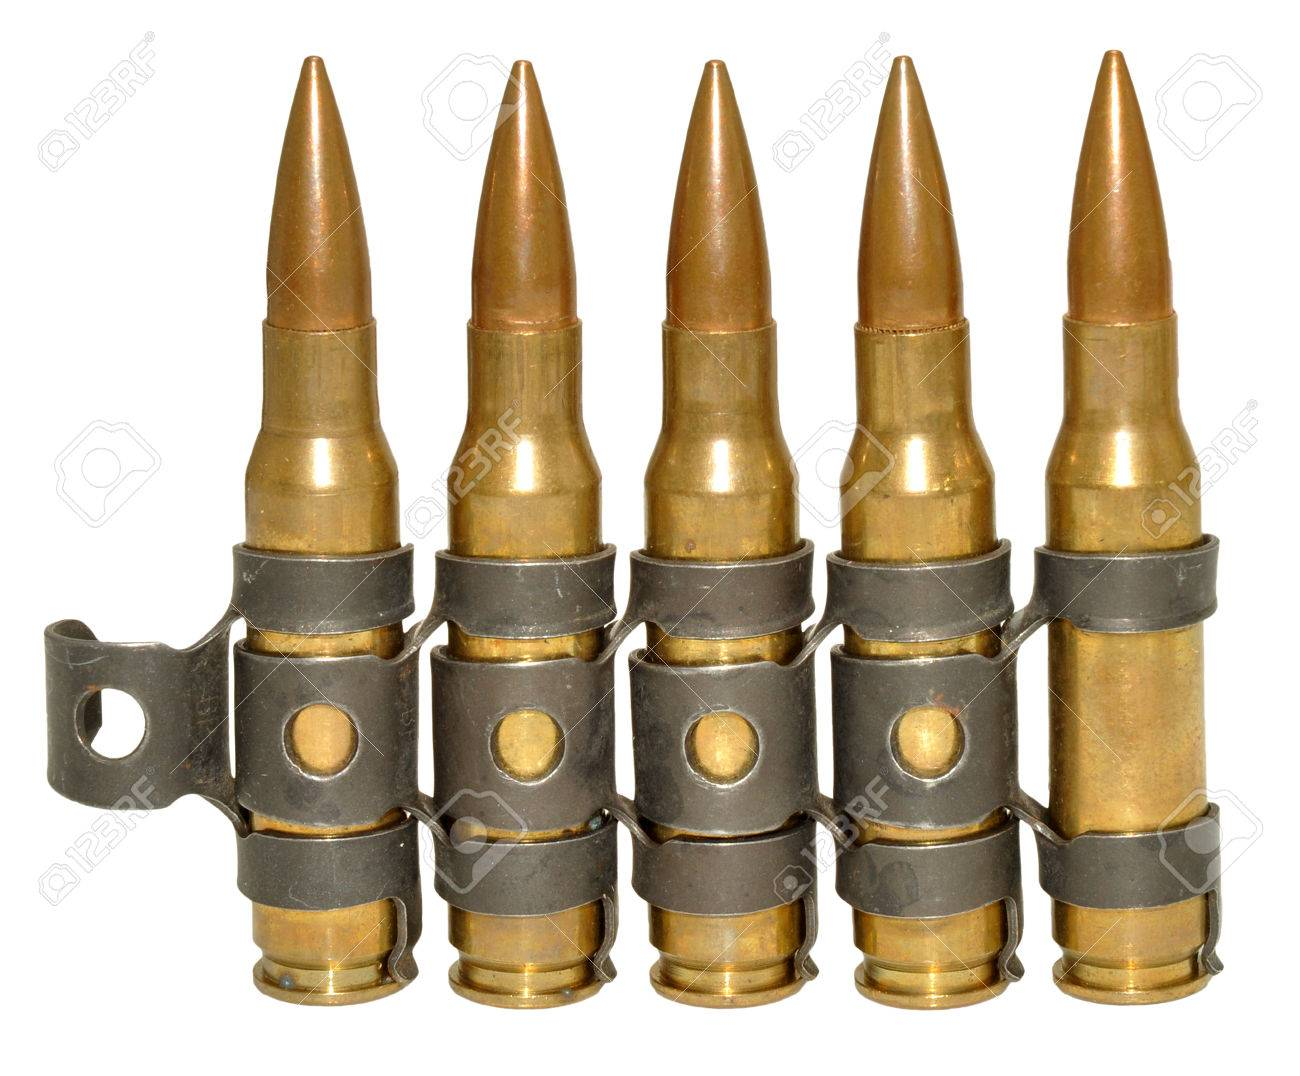 Five rounds of 303 calibre bullets, isolated